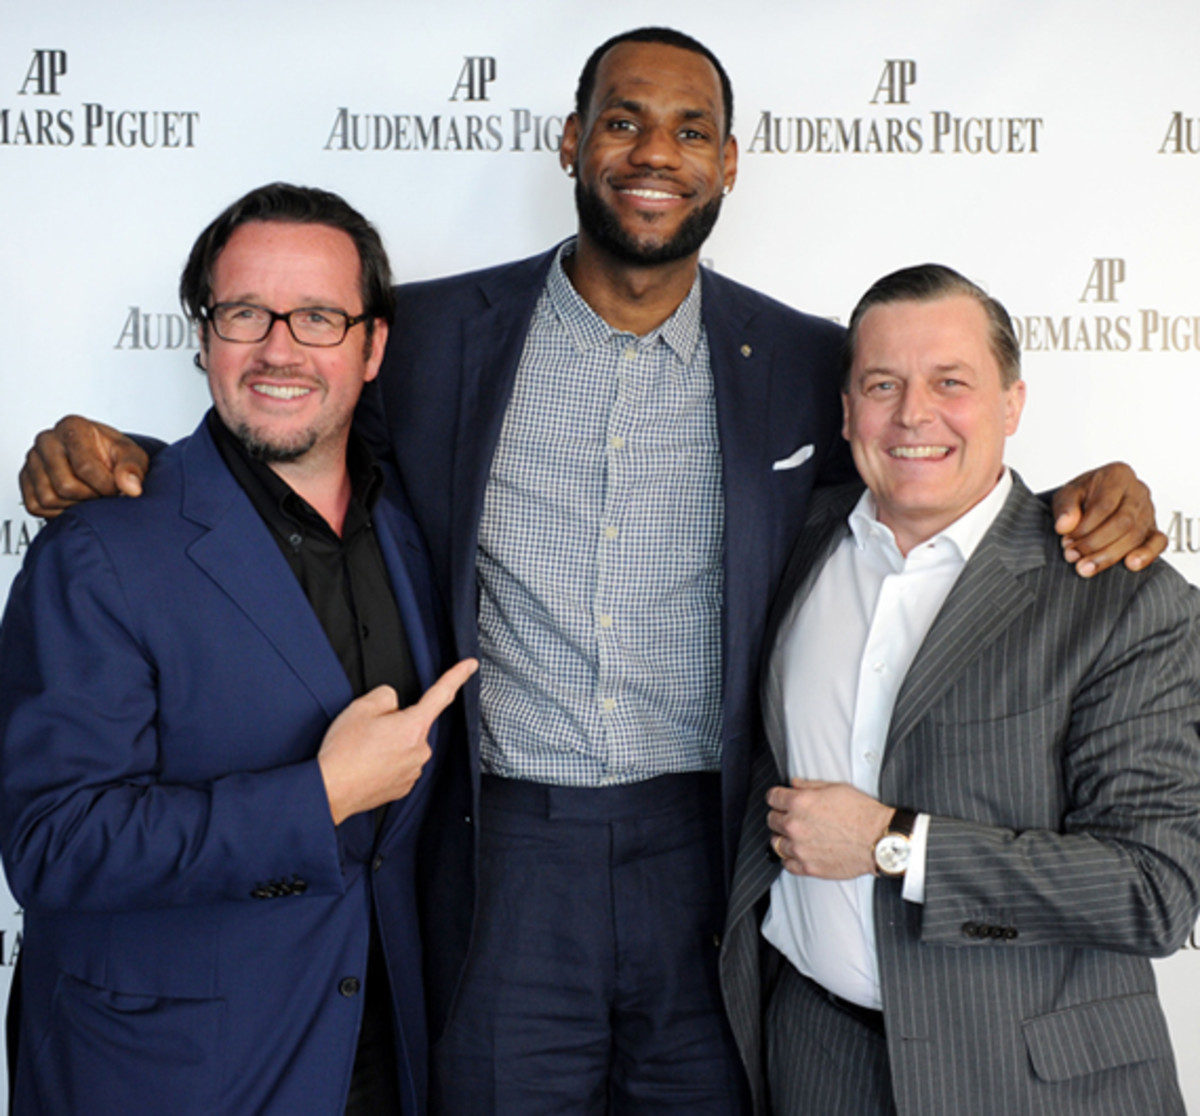 lebron-james-audemars-piguet-02